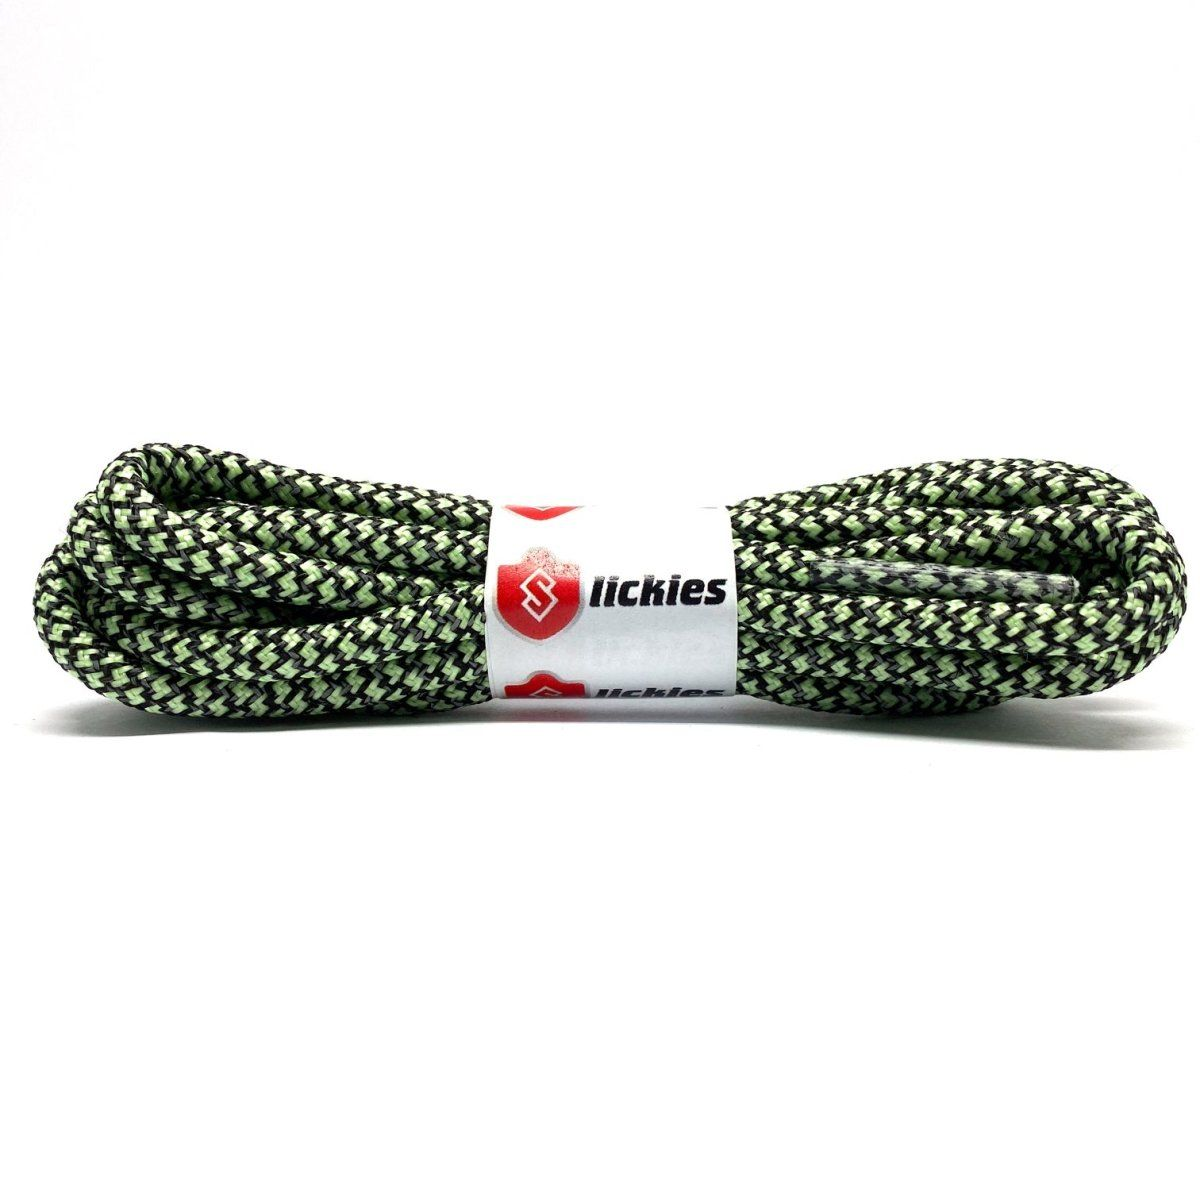 3M Rope - 3M Reflective Rope Laces V2 - Glow In The Dark Green For Yeezy Boost 350 V2 Yeezreel